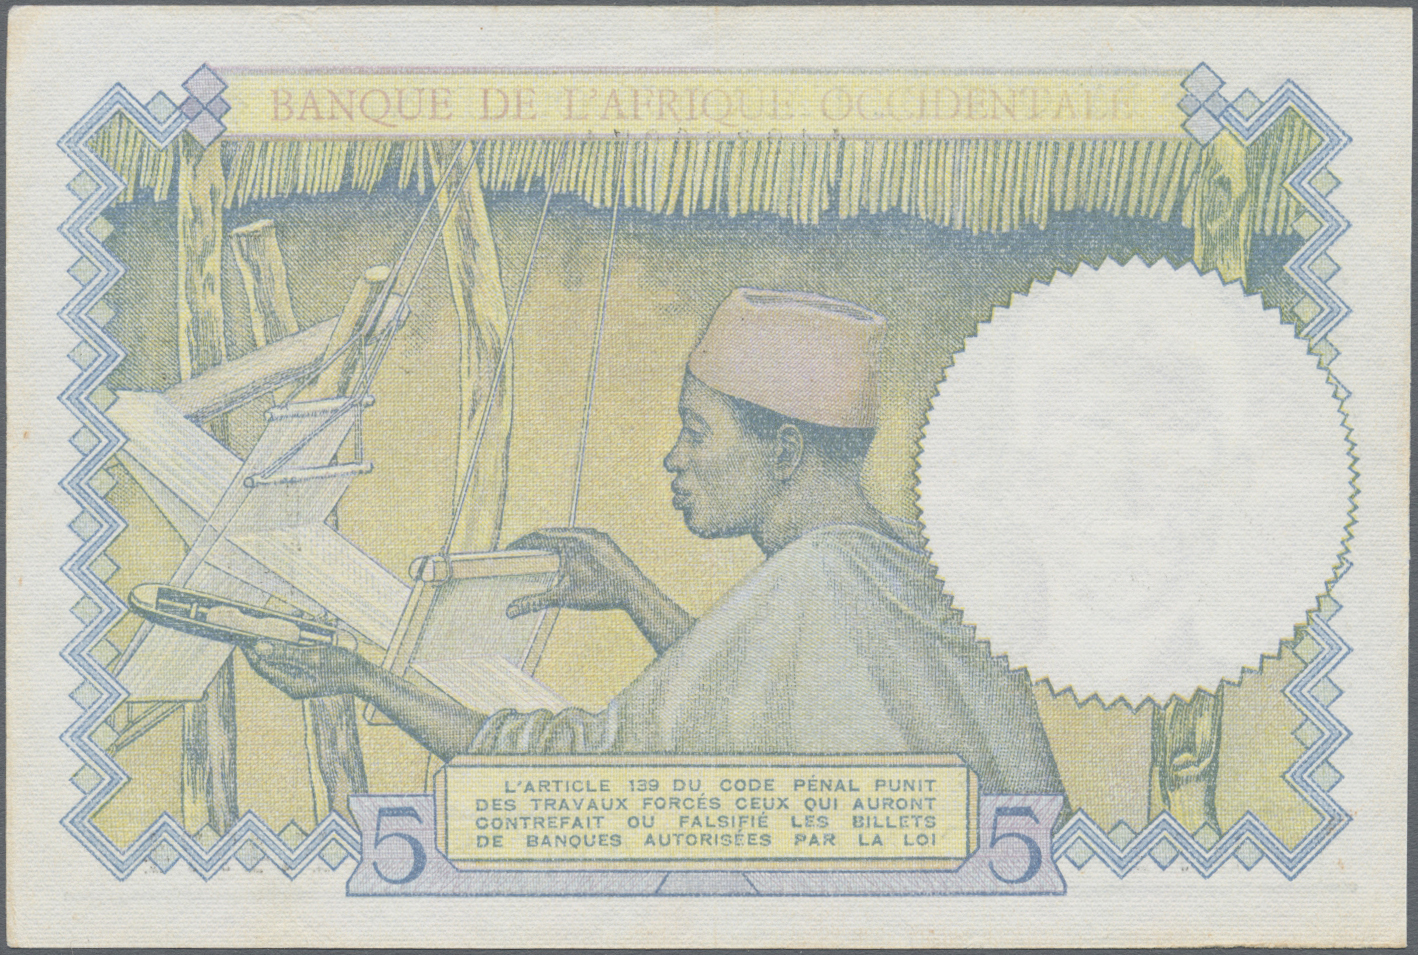 Lot 00353 - French West Africa / Französisch Westafrika | Banknoten  -  Auktionshaus Christoph Gärtner GmbH & Co. KG Sale #48 The Banknotes